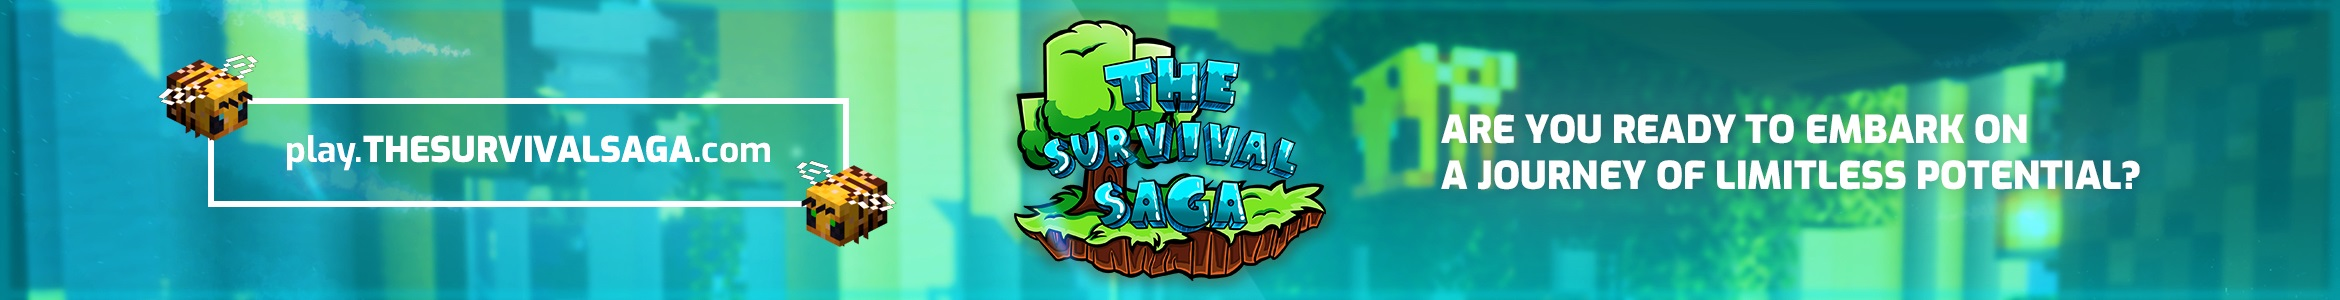 Banner for The Survival Saga server